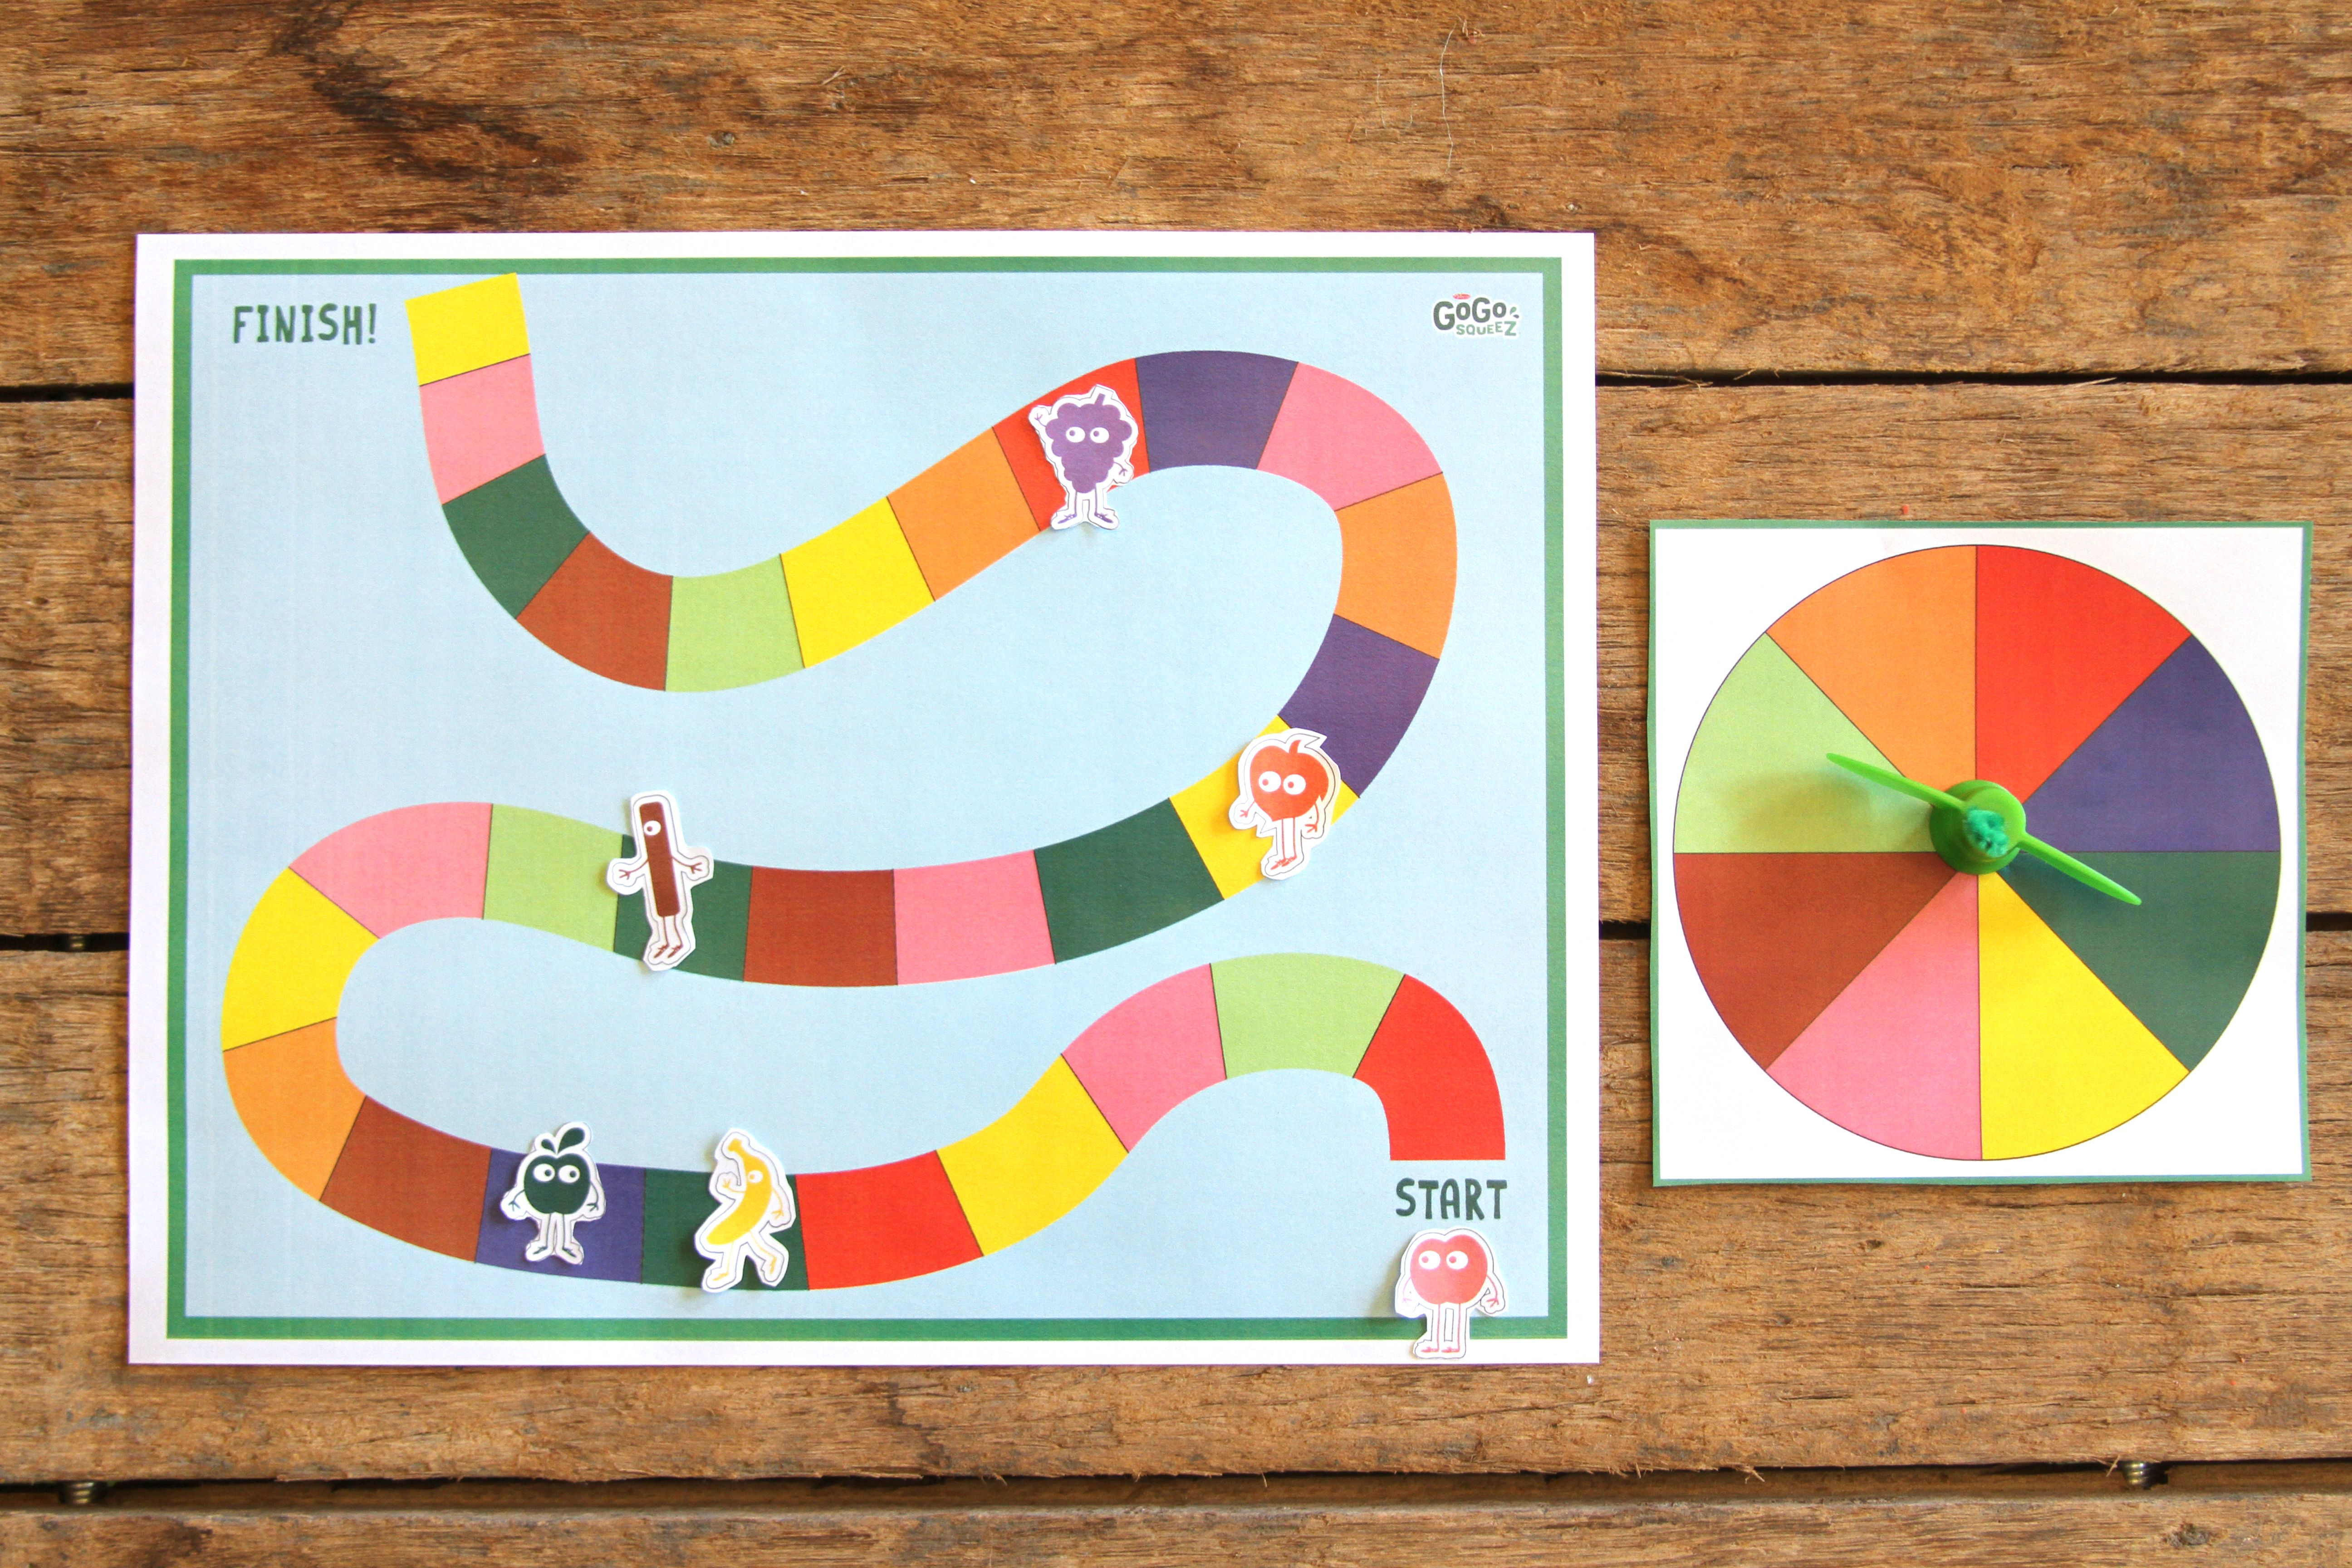 DIY Printable Board Game for Family Game Night (With